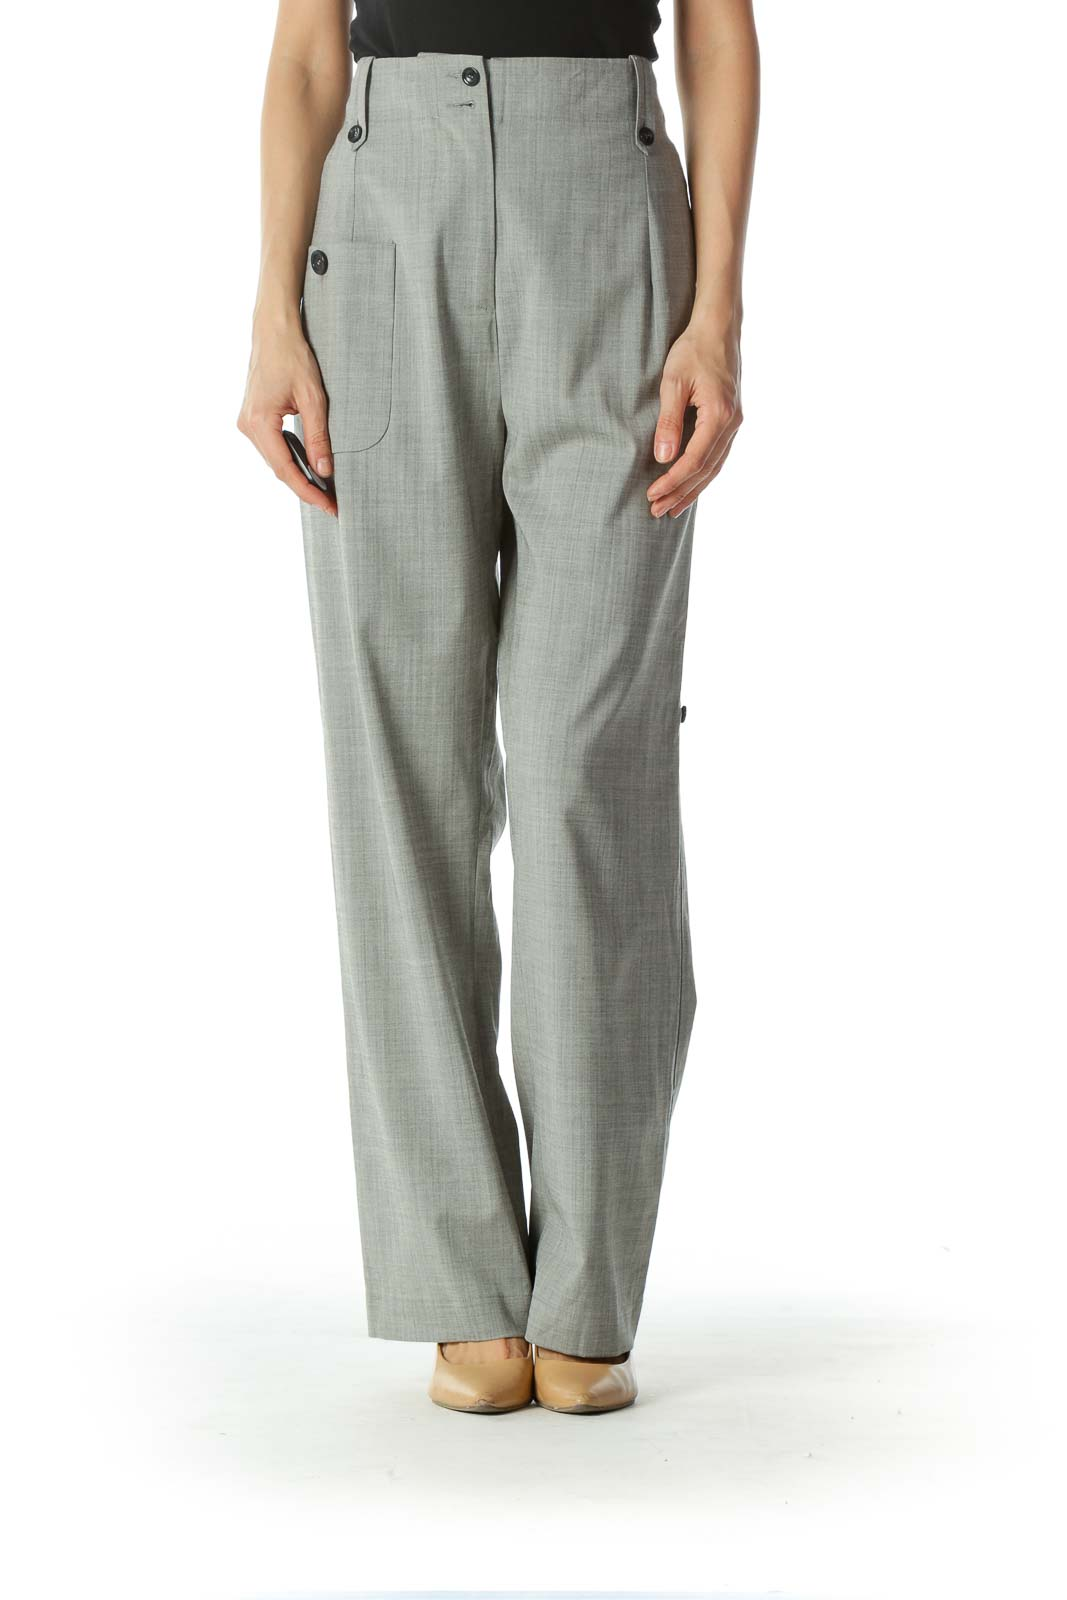 Gray High Waisted Wide Leg Pant